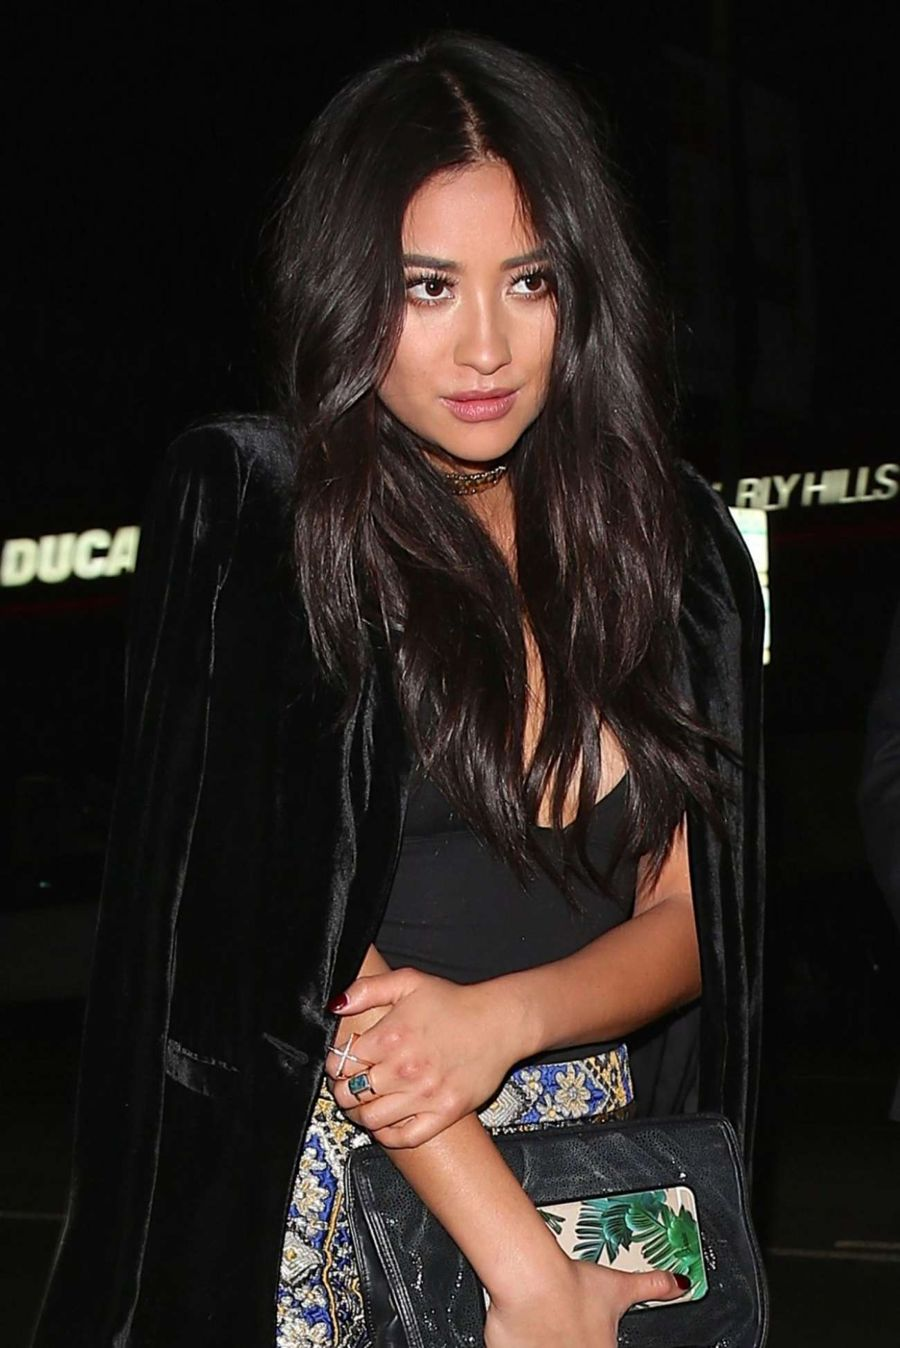 Shay Mitchell at Craig's in West Hollywood